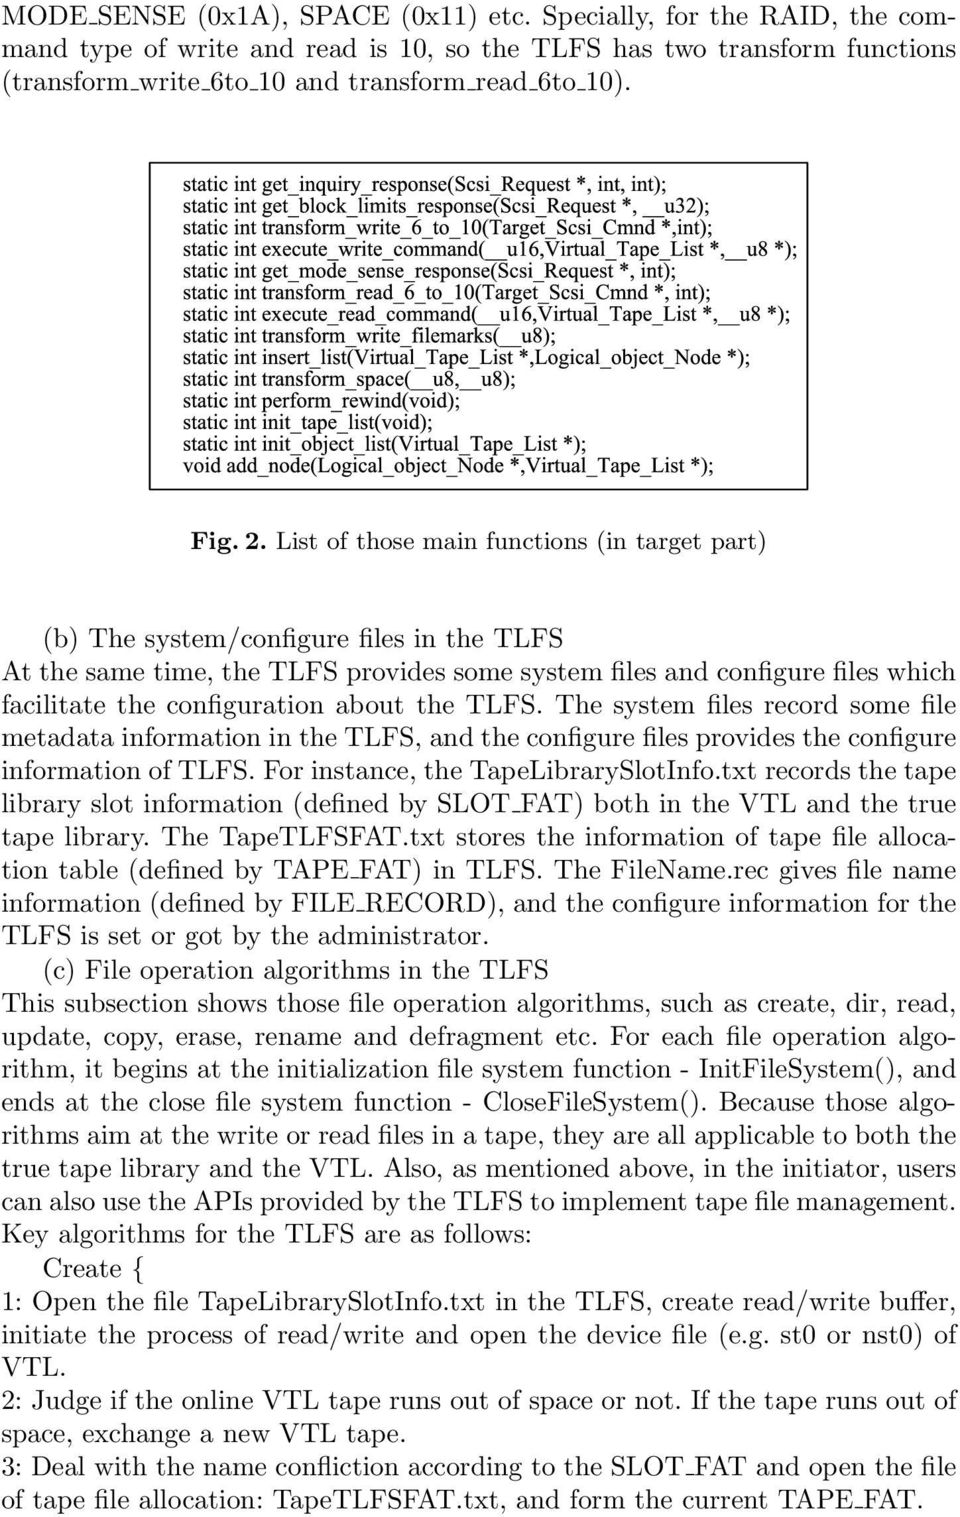 configuration about the TLFS. The system files record some file metadata information in the TLFS, and the configure files provides the configure information of TLFS.